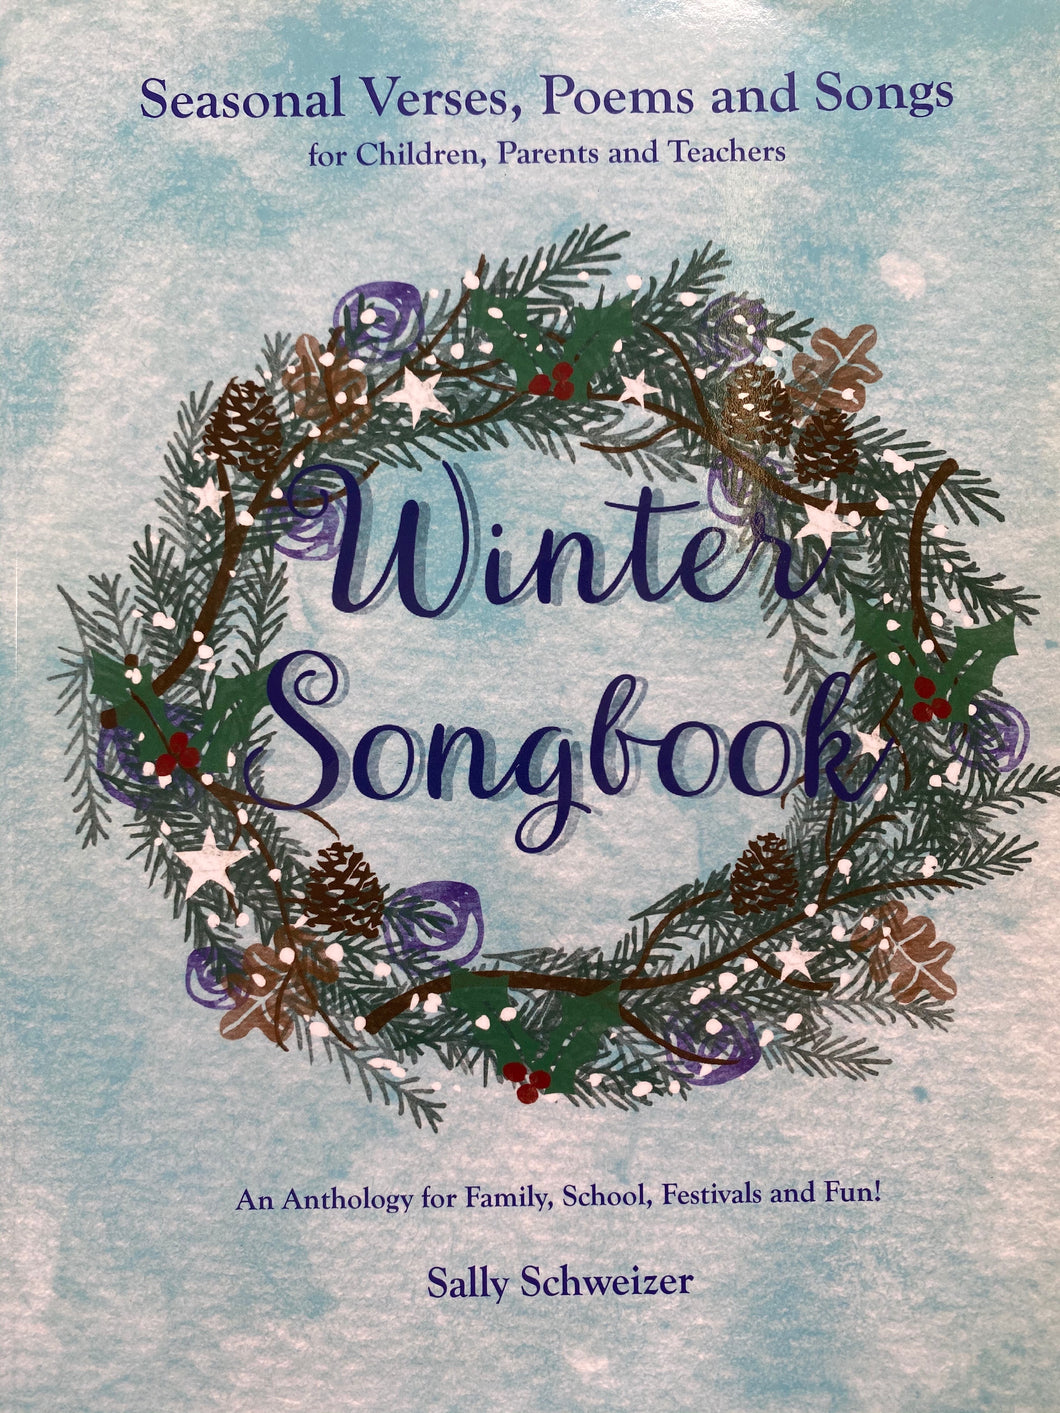 Winter Songbook - Seasonal Verses, Poems and Songs for Children, Parents and Teachers